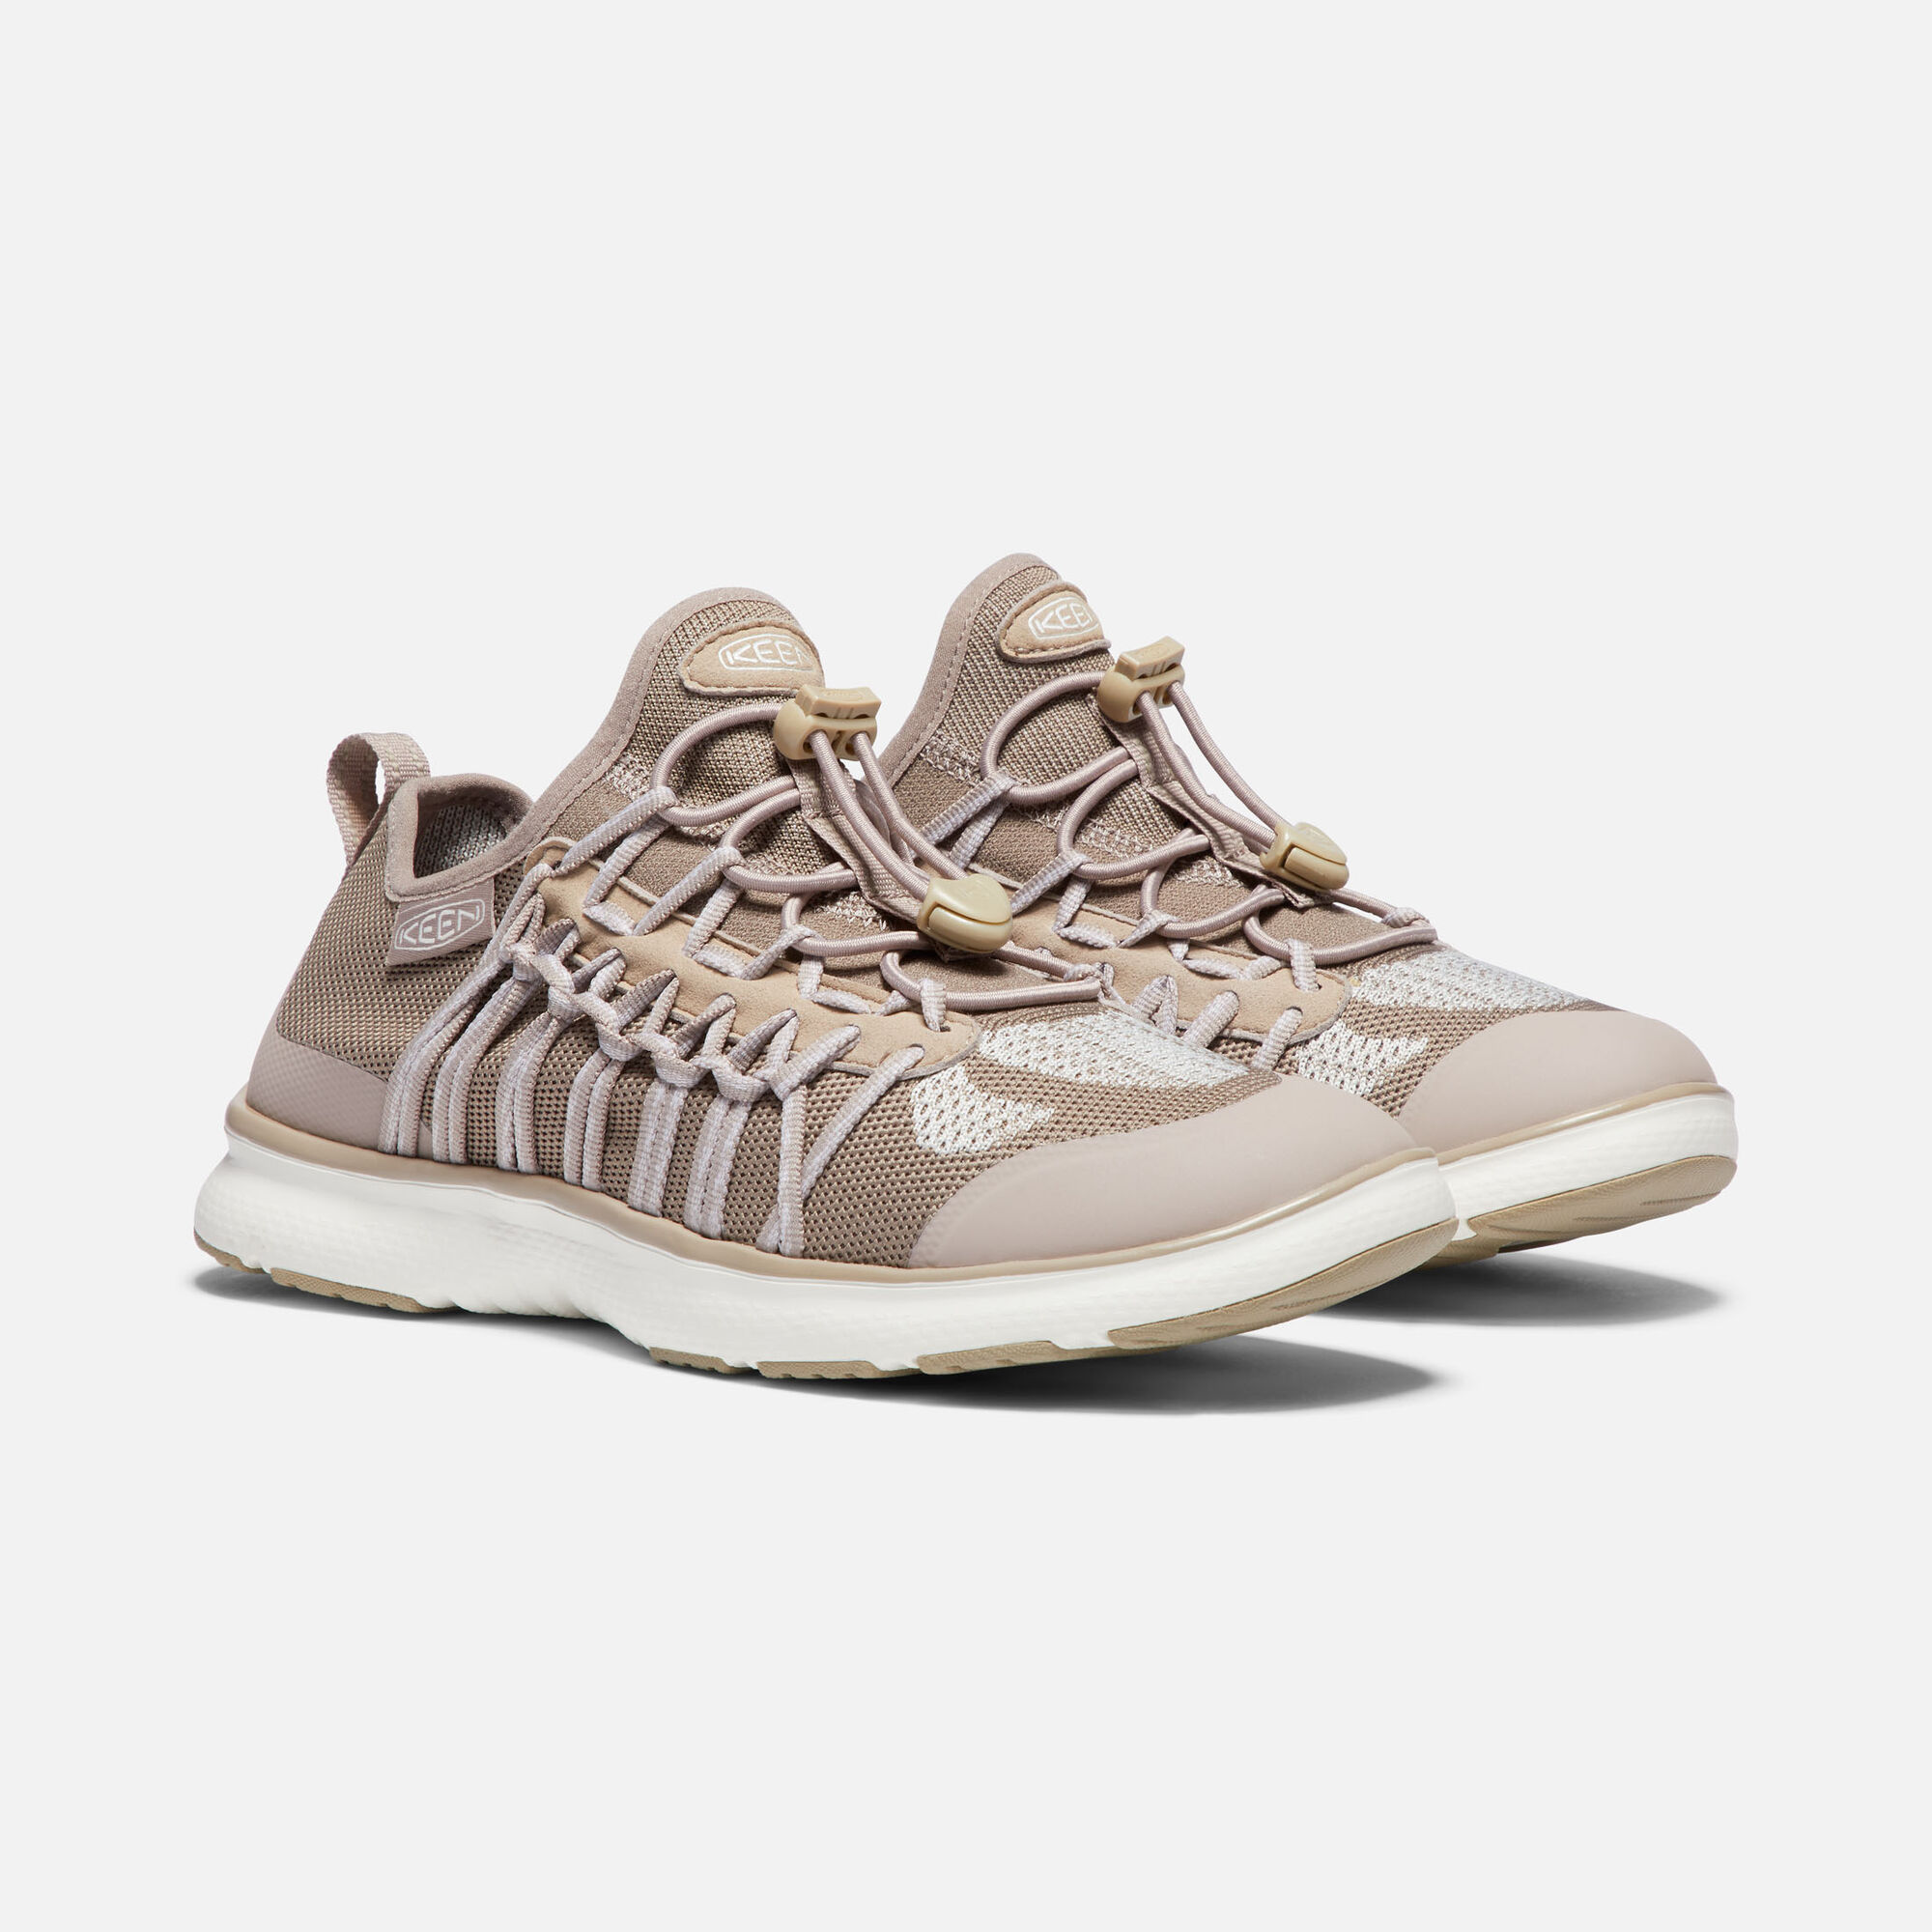 e783b8ef5100 WOMEN S UNEEK EXO in ETHEREA PLAZA TAUPE - small view.